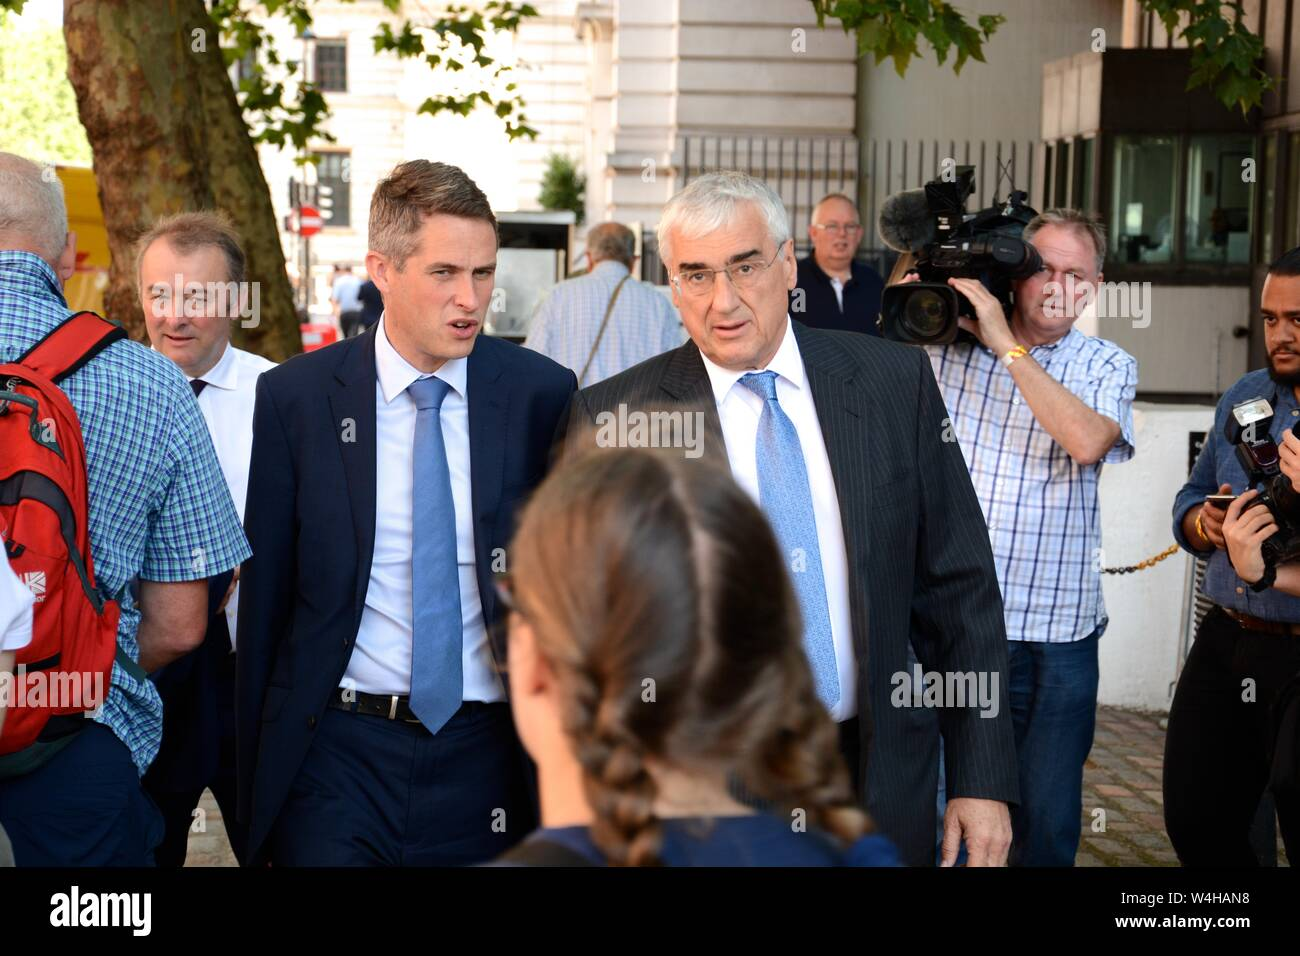 The Tory Leadership result at the QEII 23rd July 2019 & the attendees included the powerful and influential in the Tory Party & huge press coverage. Stock Photo